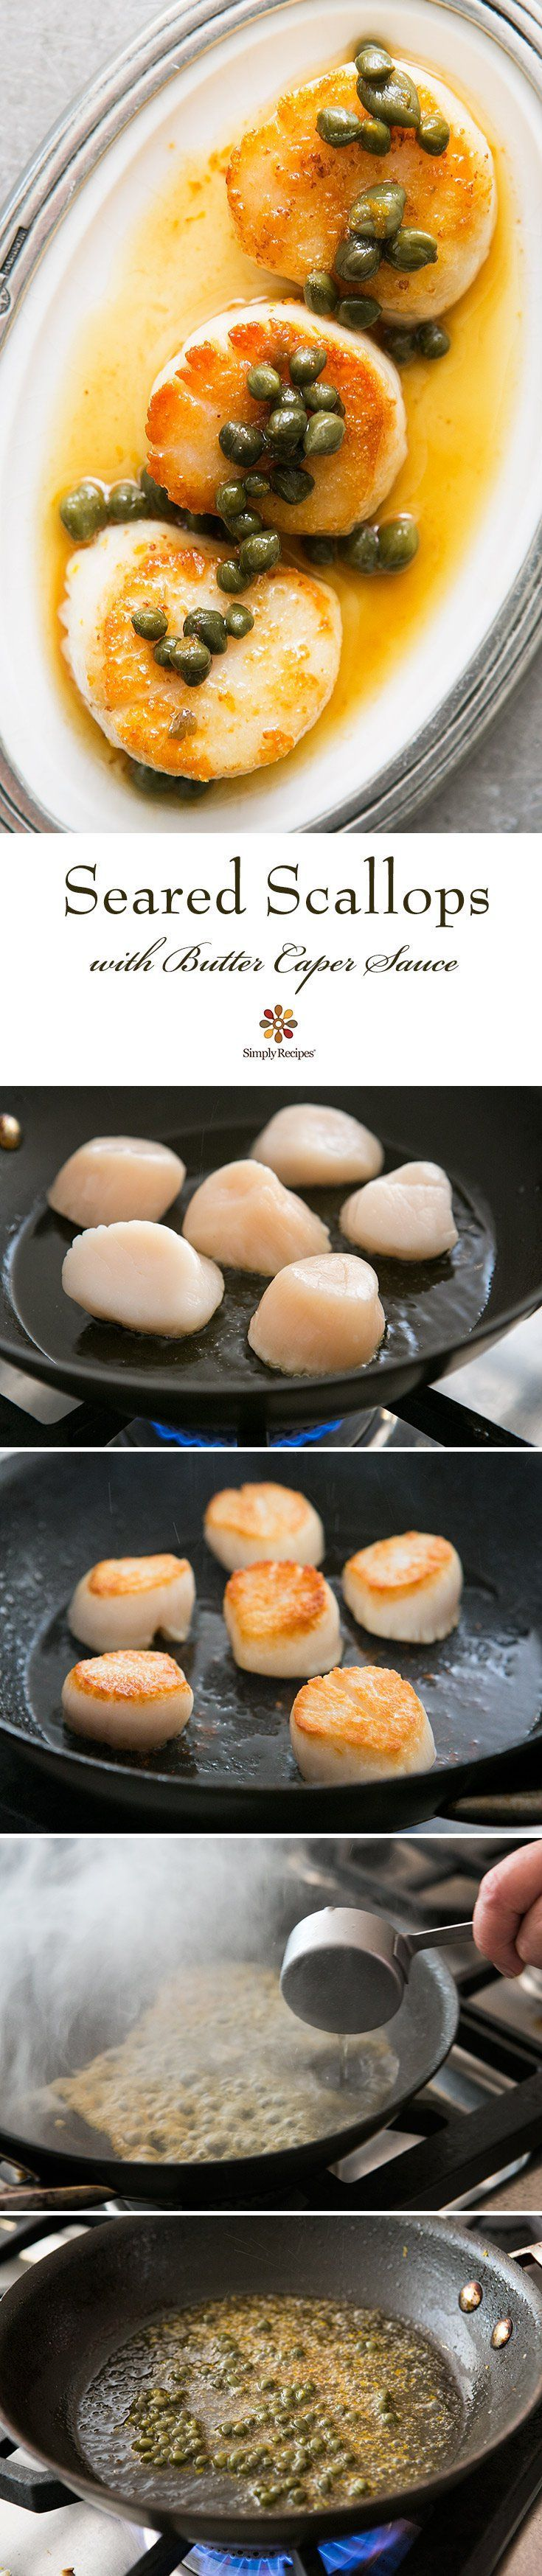 Seared Scallops with Brown Butter Caper Sauce ~ Large sea scallops, seared and topped with browned butter sauce with capers and lemon zest. ~ SimplyRecipes.com #seafoodrecipes